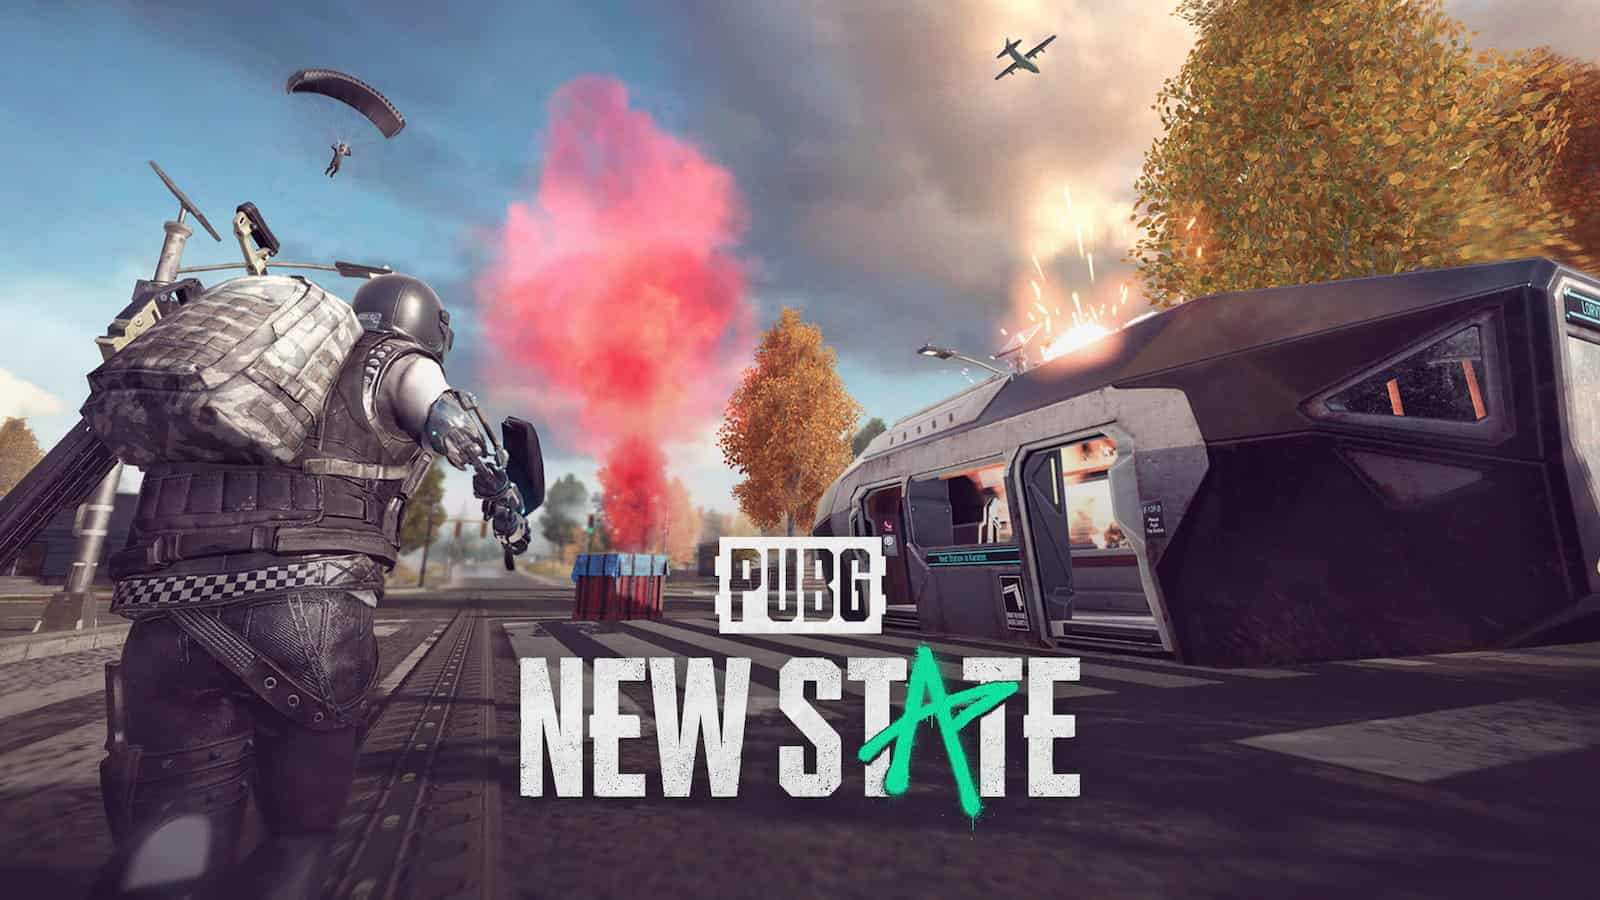 The community has spoken, millions are excited for the new state of PUBG